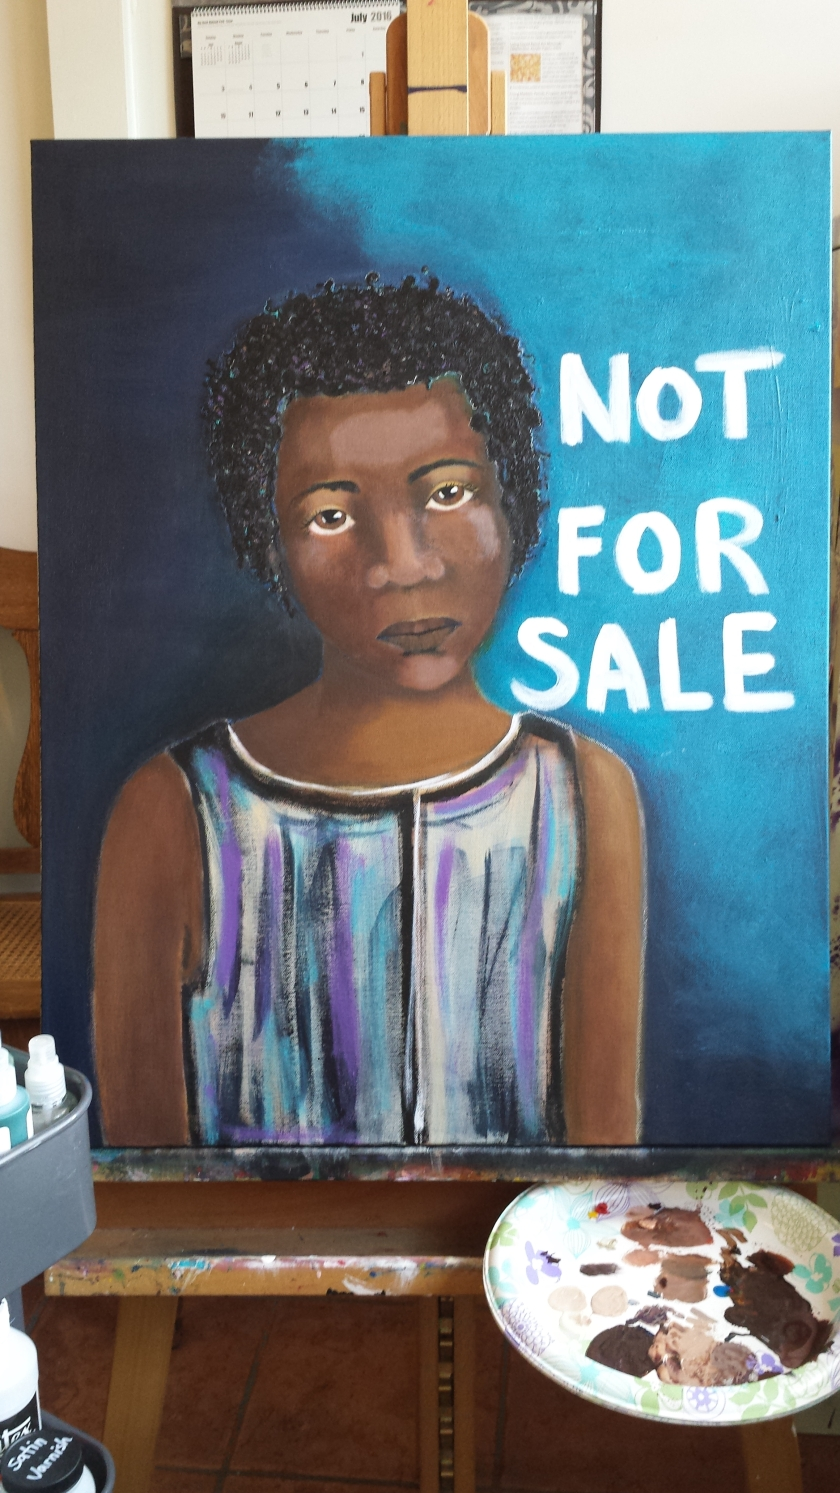 NOT FOR SALE is the name of the painting. The painting is for sale. :)